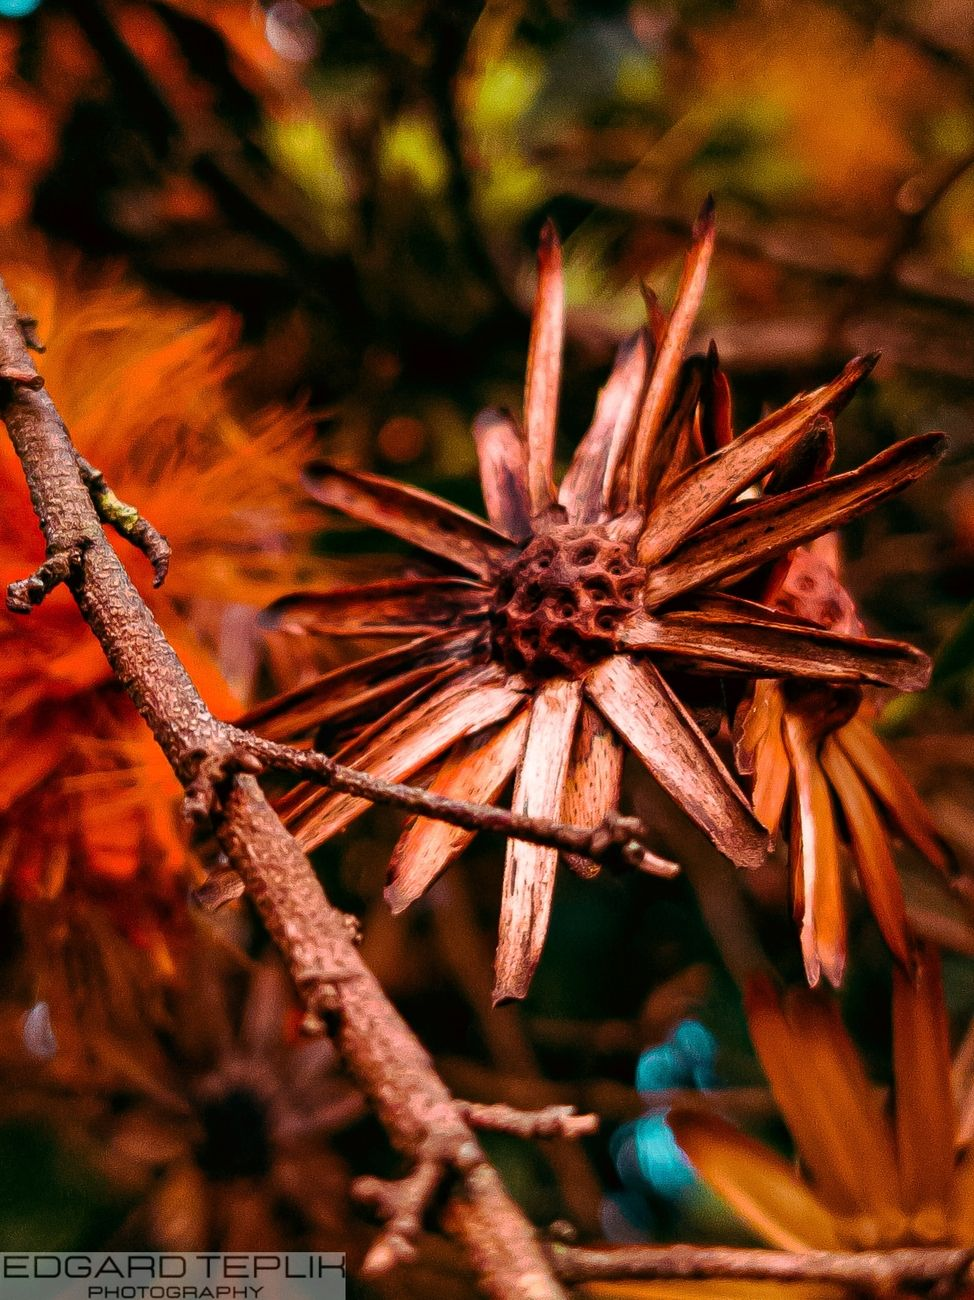 It looks like a star, with branches and leaves and green and orange tones in the background.